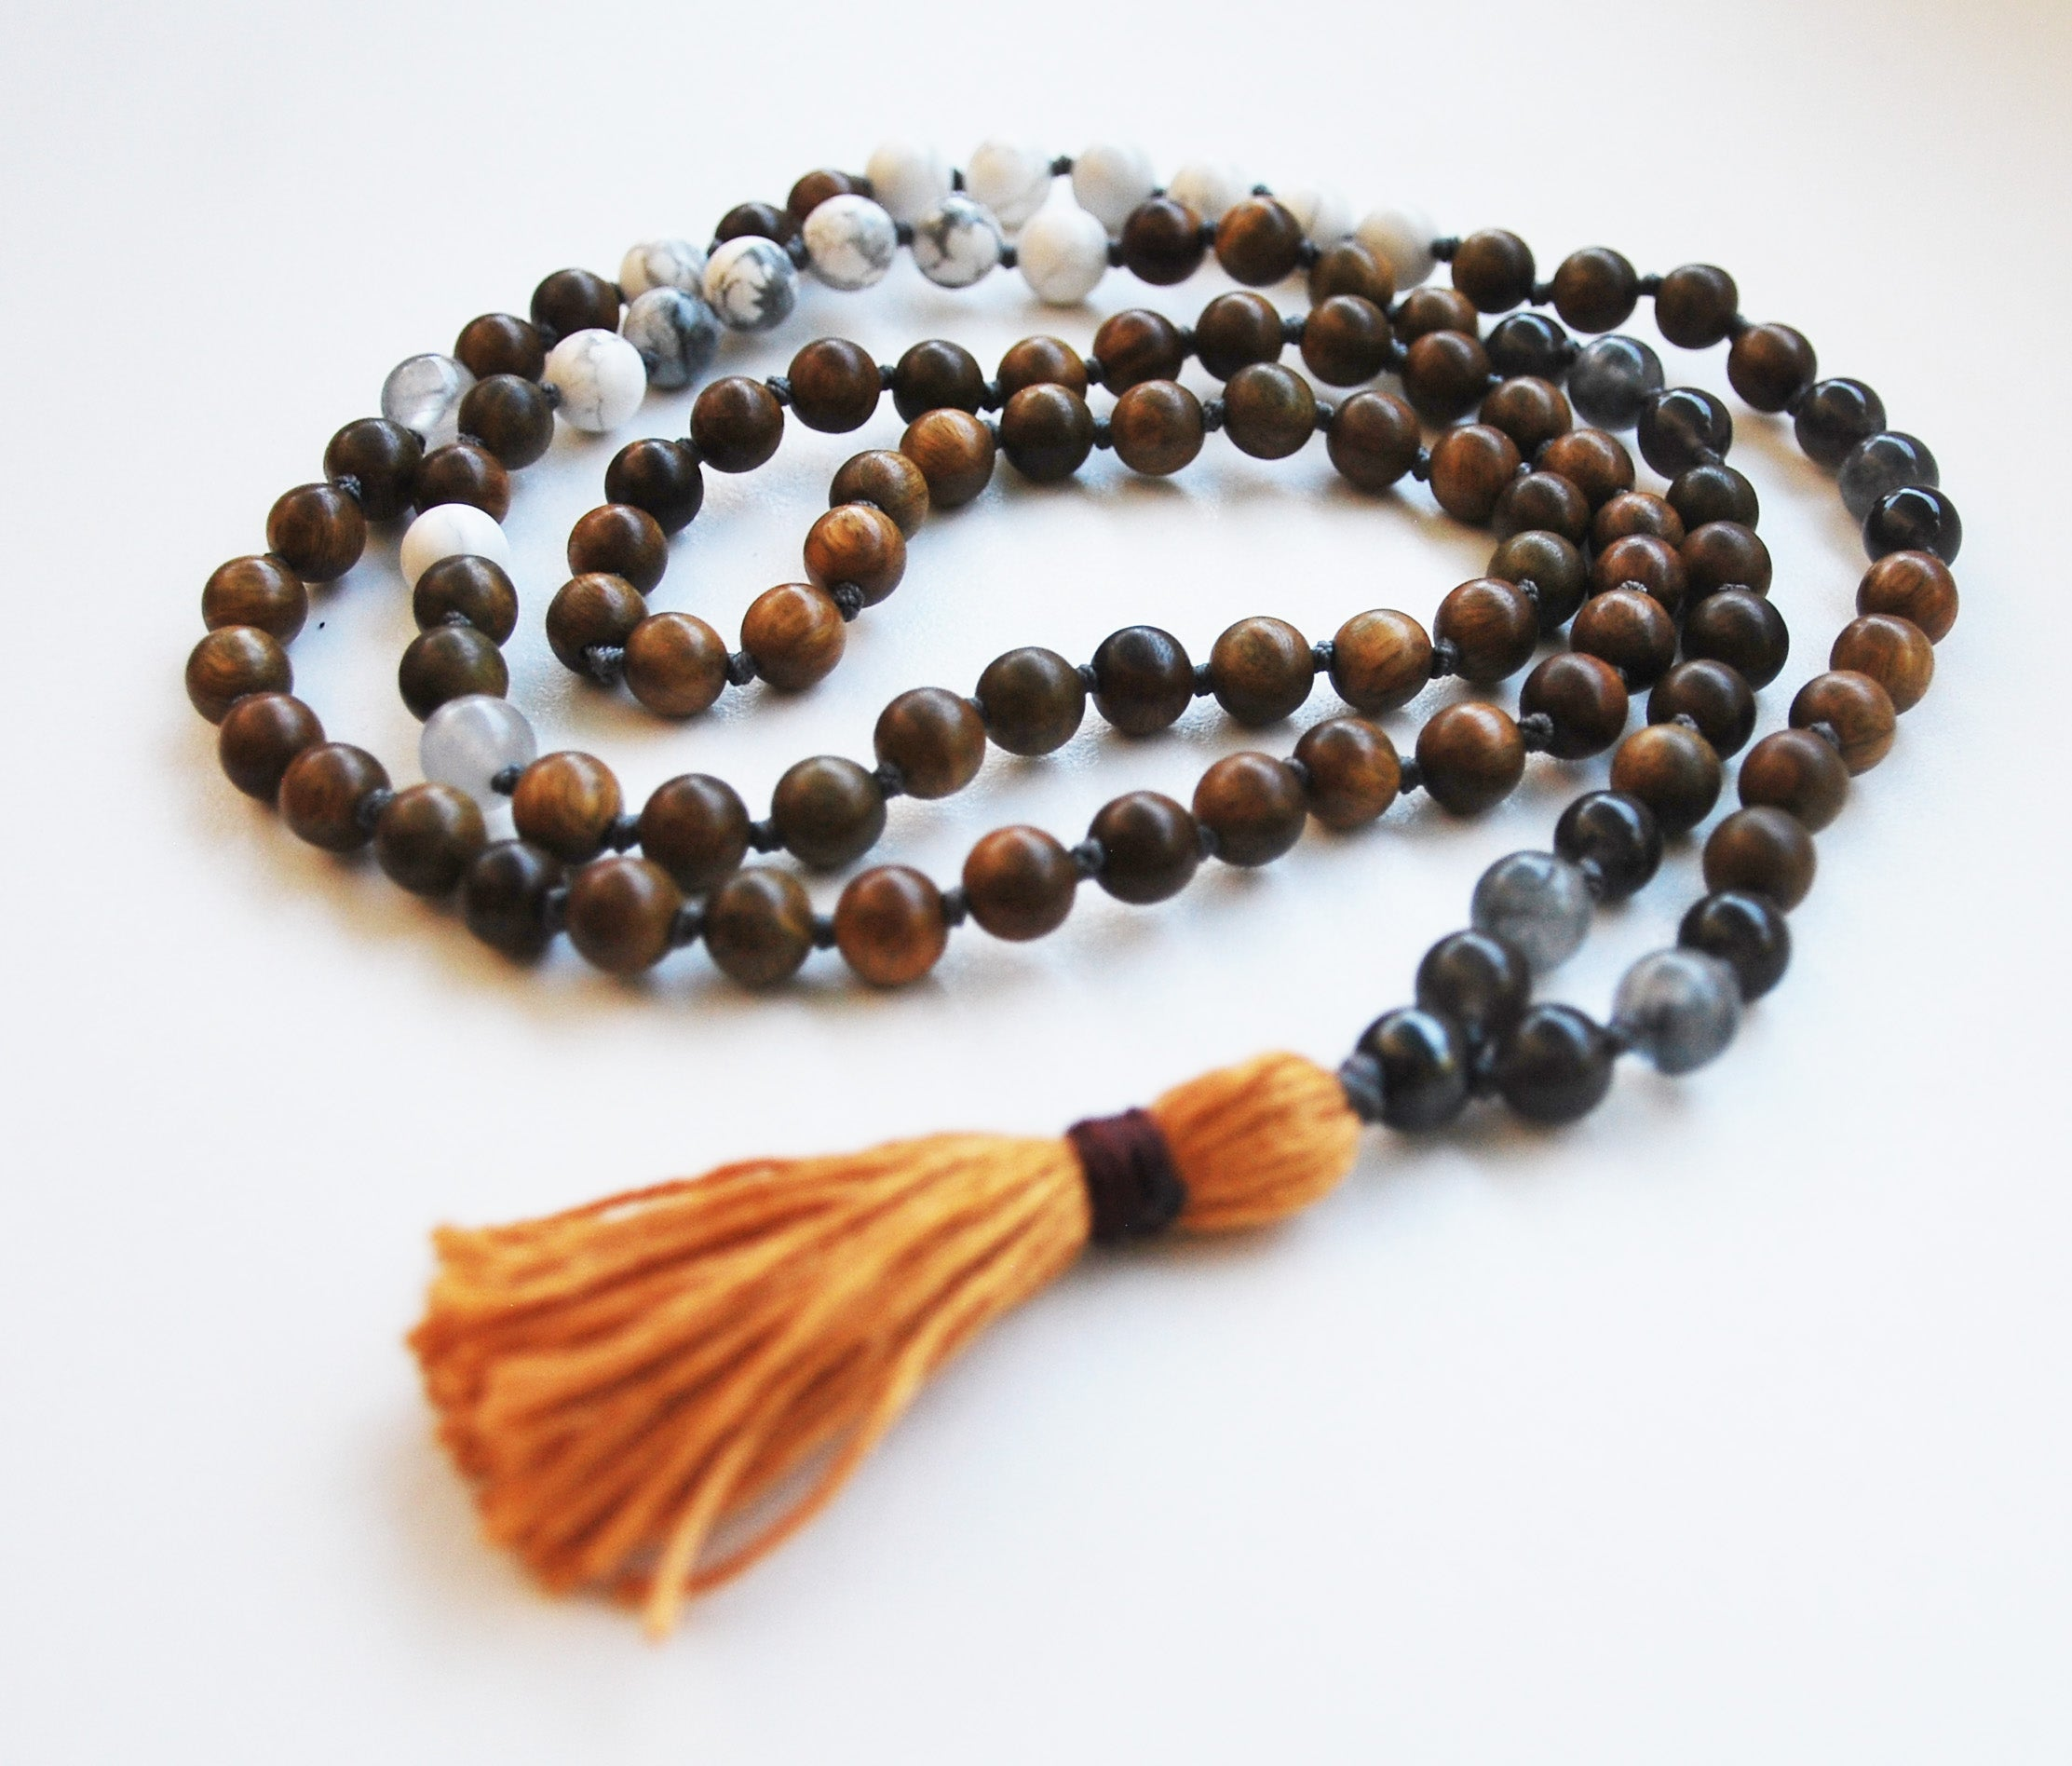 8mm Green Sandalwood & Howlite 108 Knotted Mala Necklace with Cotton Tassel